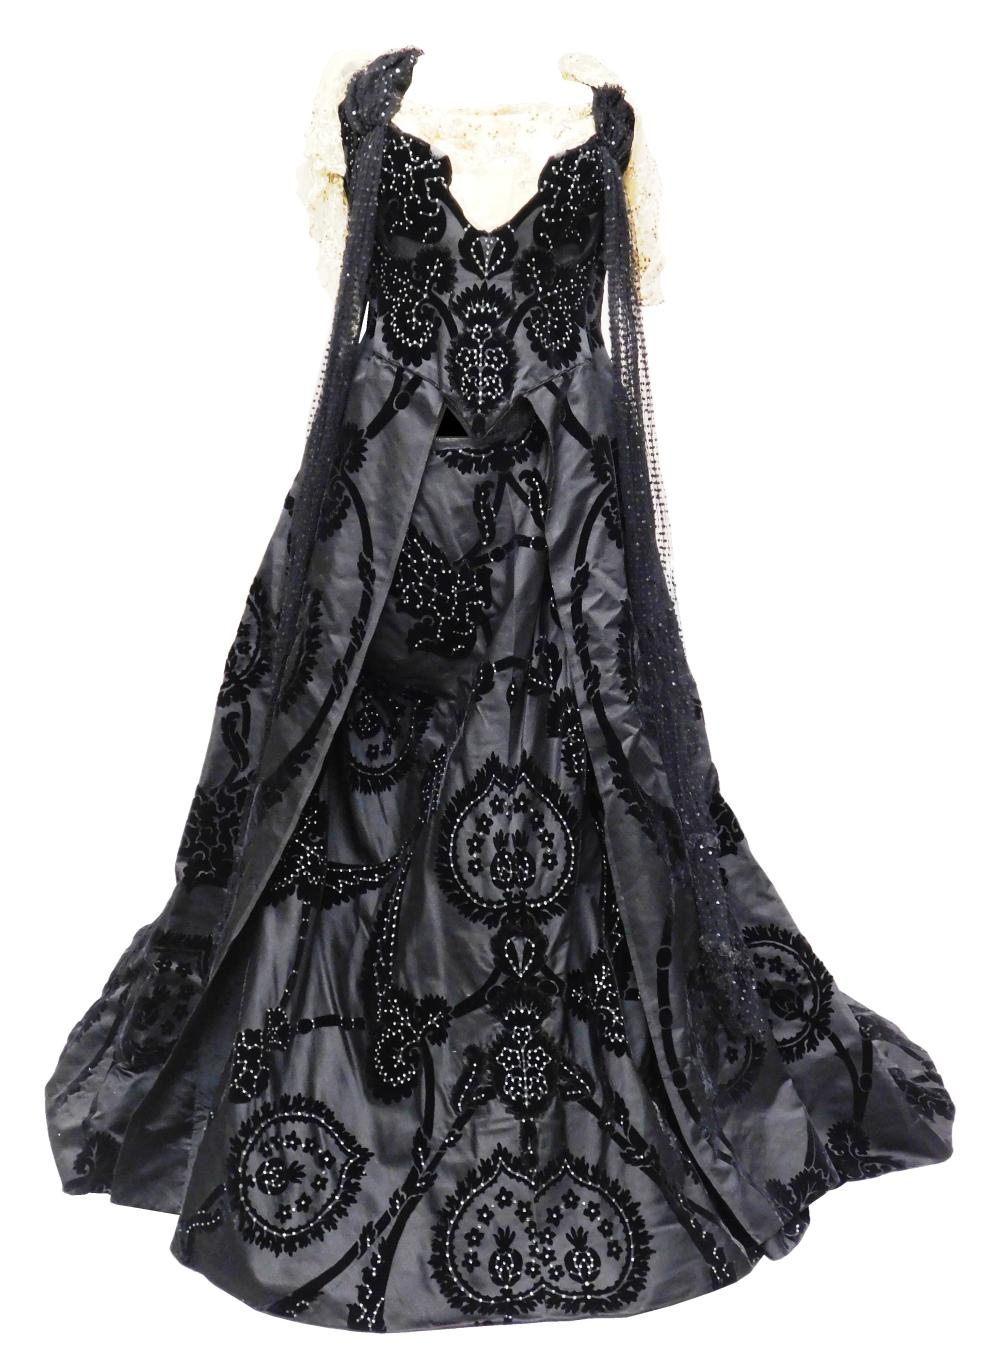 House of Worth black velvet brocade evening dress, c. 1890's, museum provenance, details include: black brocade velvet bodice and sk..